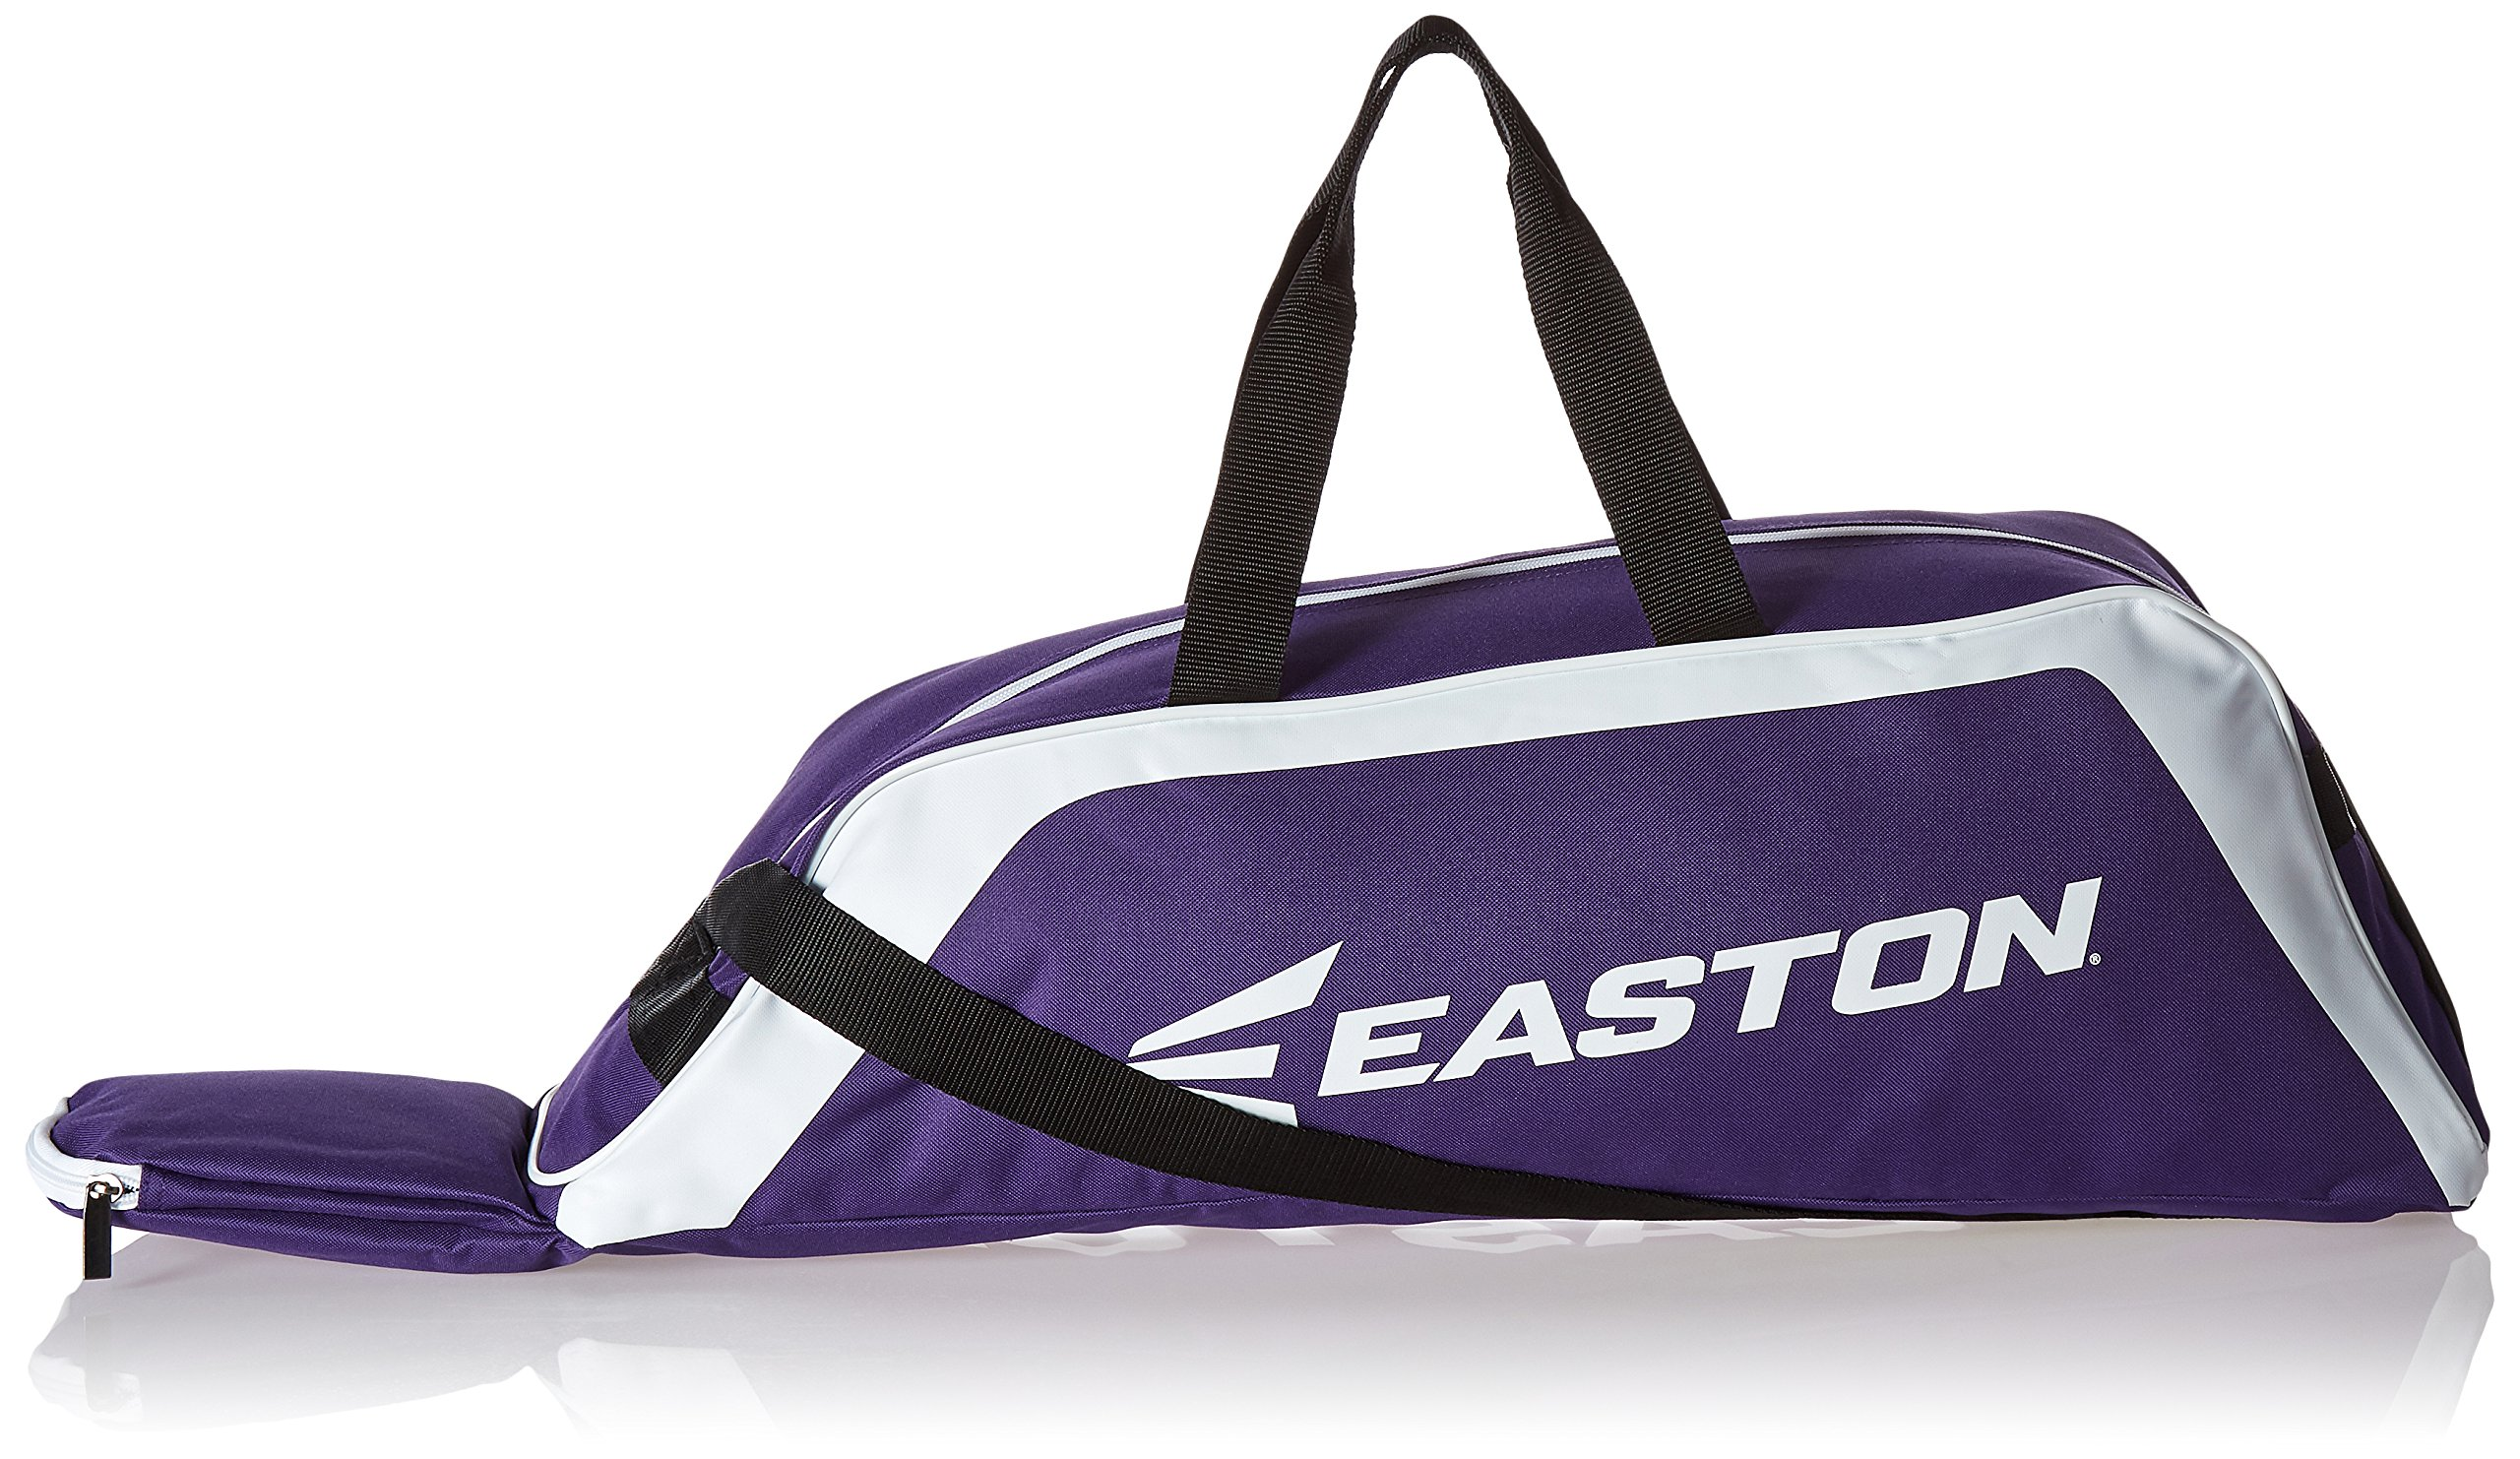 EASTON E100T Youth Bat & Equipment Tote Bag | Baseball Softball | 2019 | Purple | 2 Bat Compartment | Main Gear Compartment | Fence Hook | Shoulder & 2 Handle Straps by Easton